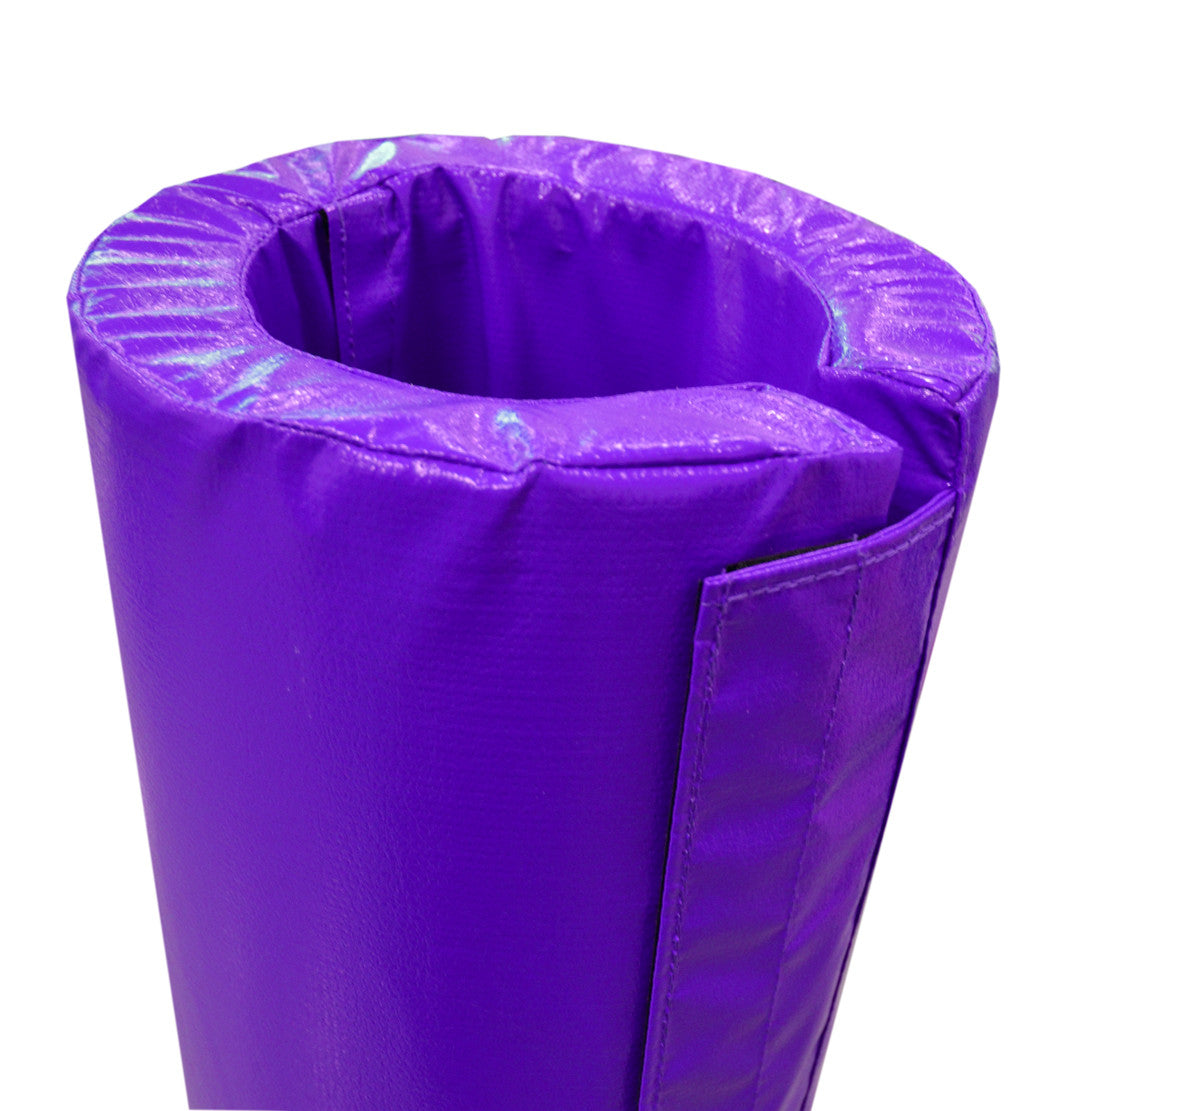 "4' Tall Pole Pad, 2"" Diameter Velcro Attached"